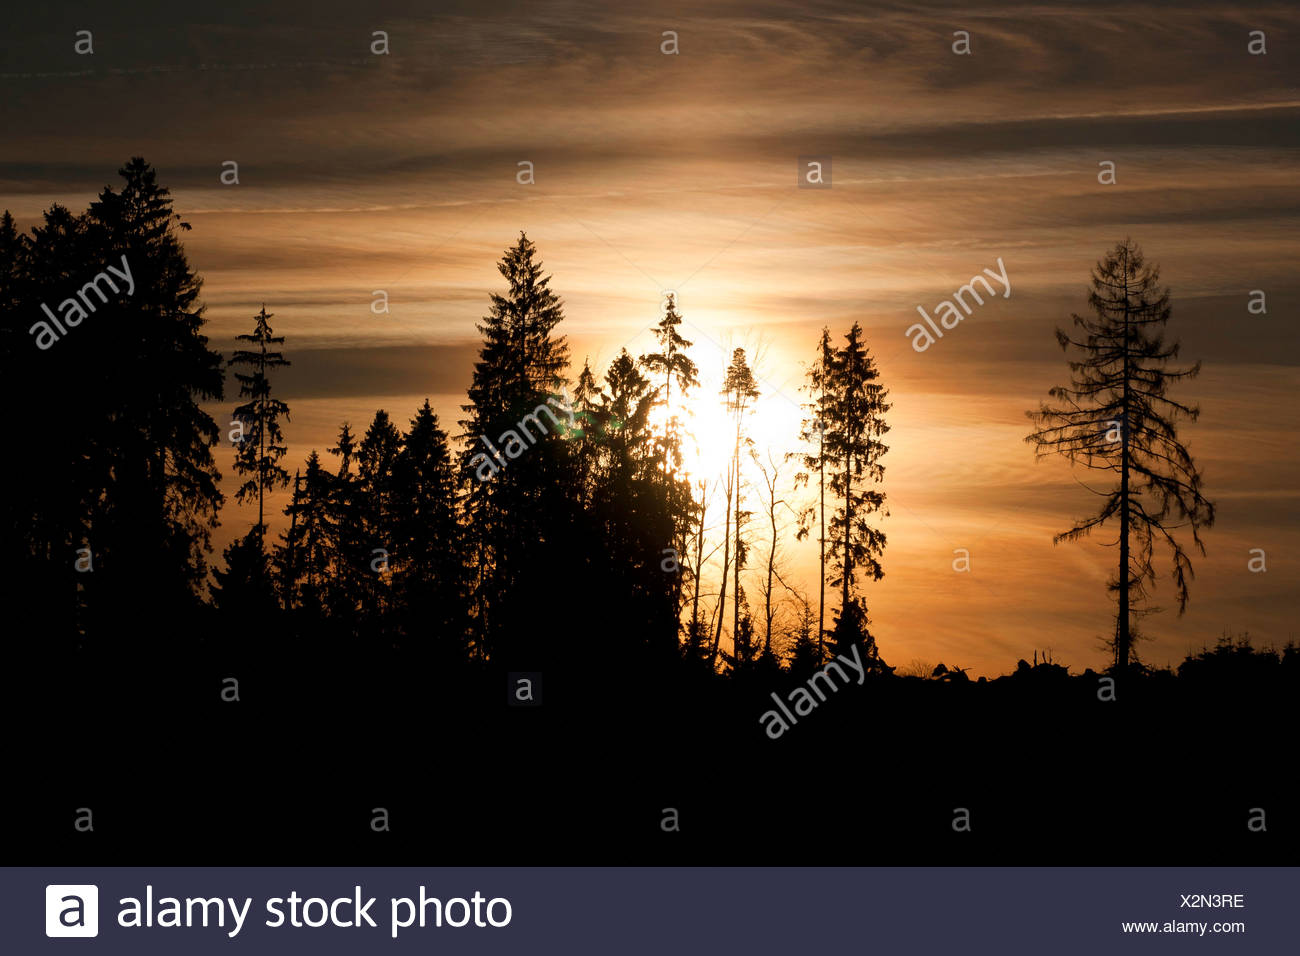 sunset behind spruces, Germany, Rhineland-Palatinate - Stock Image